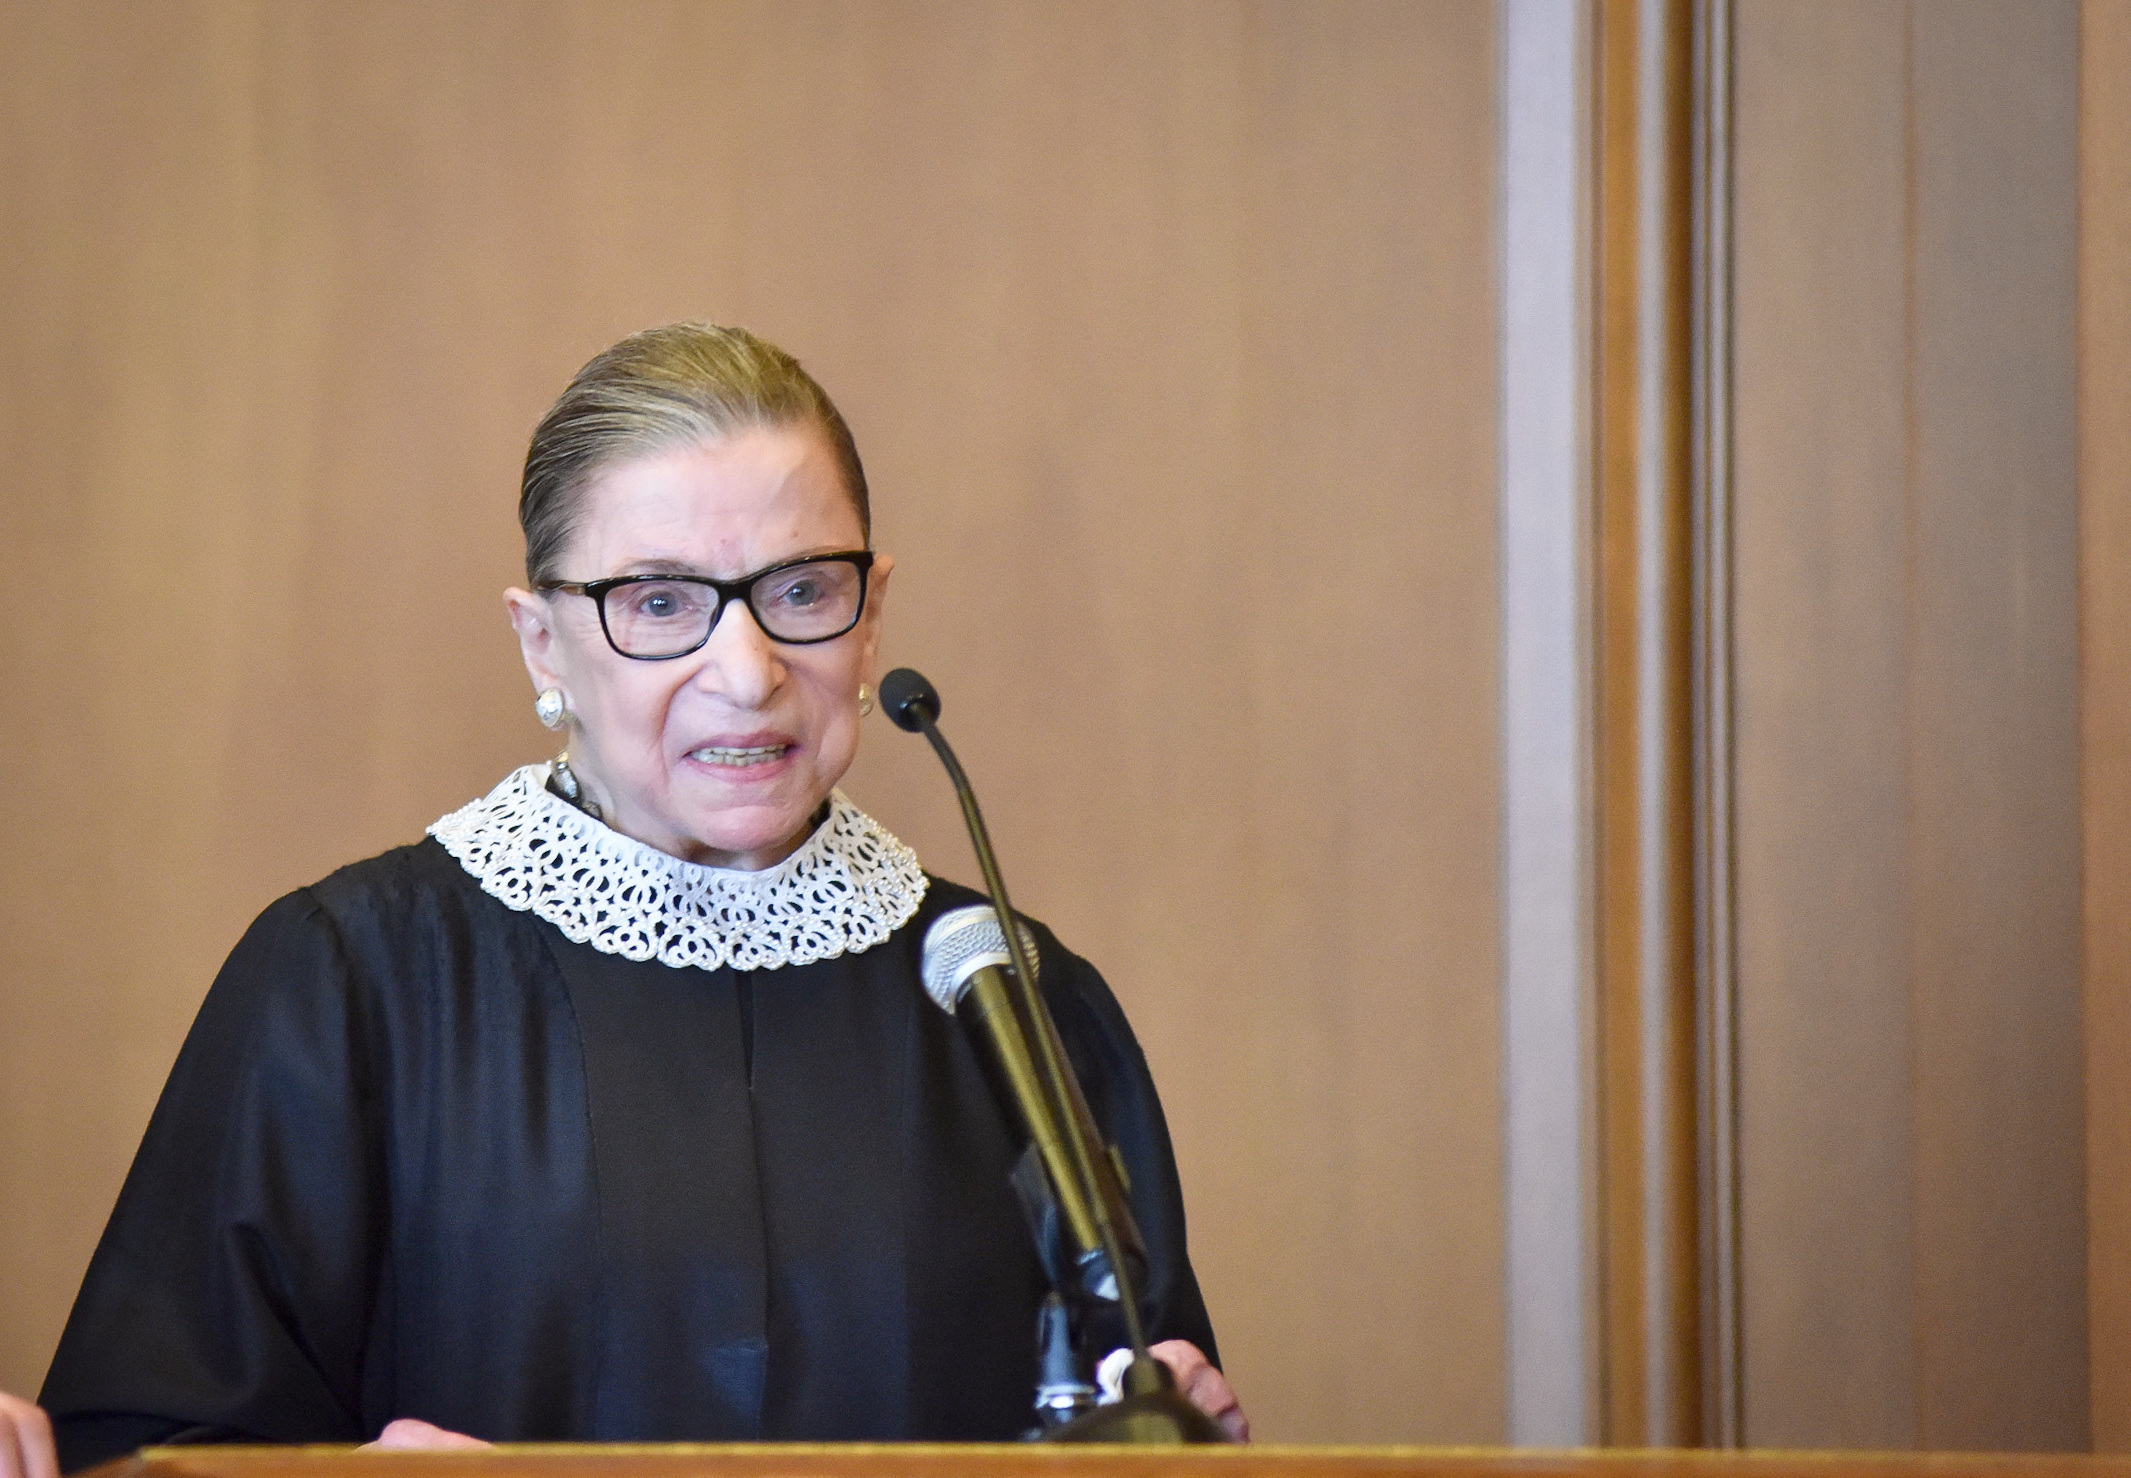 Ruth Bader Ginsburg has pancreatic cancer and received radiation treatments; too bad Google and YouTube are censoring all the cancer cures that really work